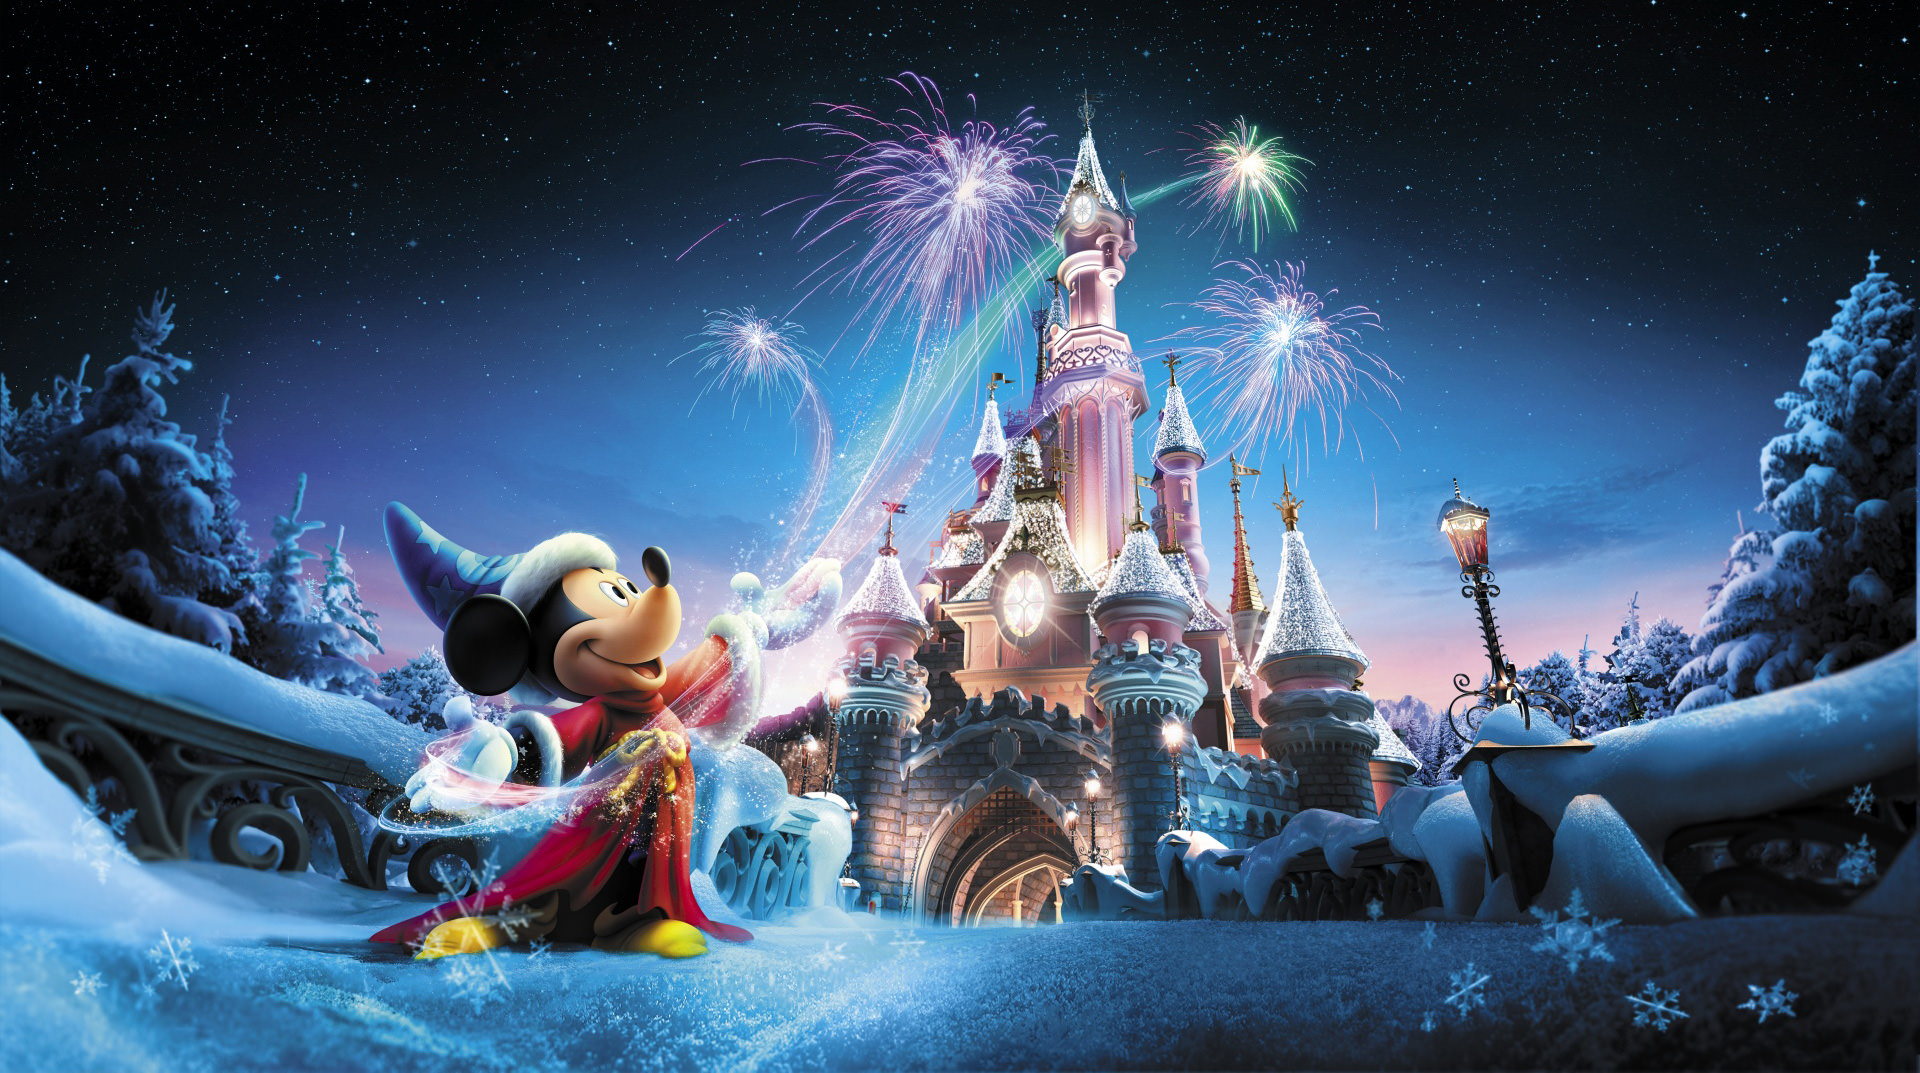 soiree reveillon noel 2018 paris Hello Disneyland : Le blog n°1 sur Disneyland Paris | Noël 2017 à  soiree reveillon noel 2018 paris